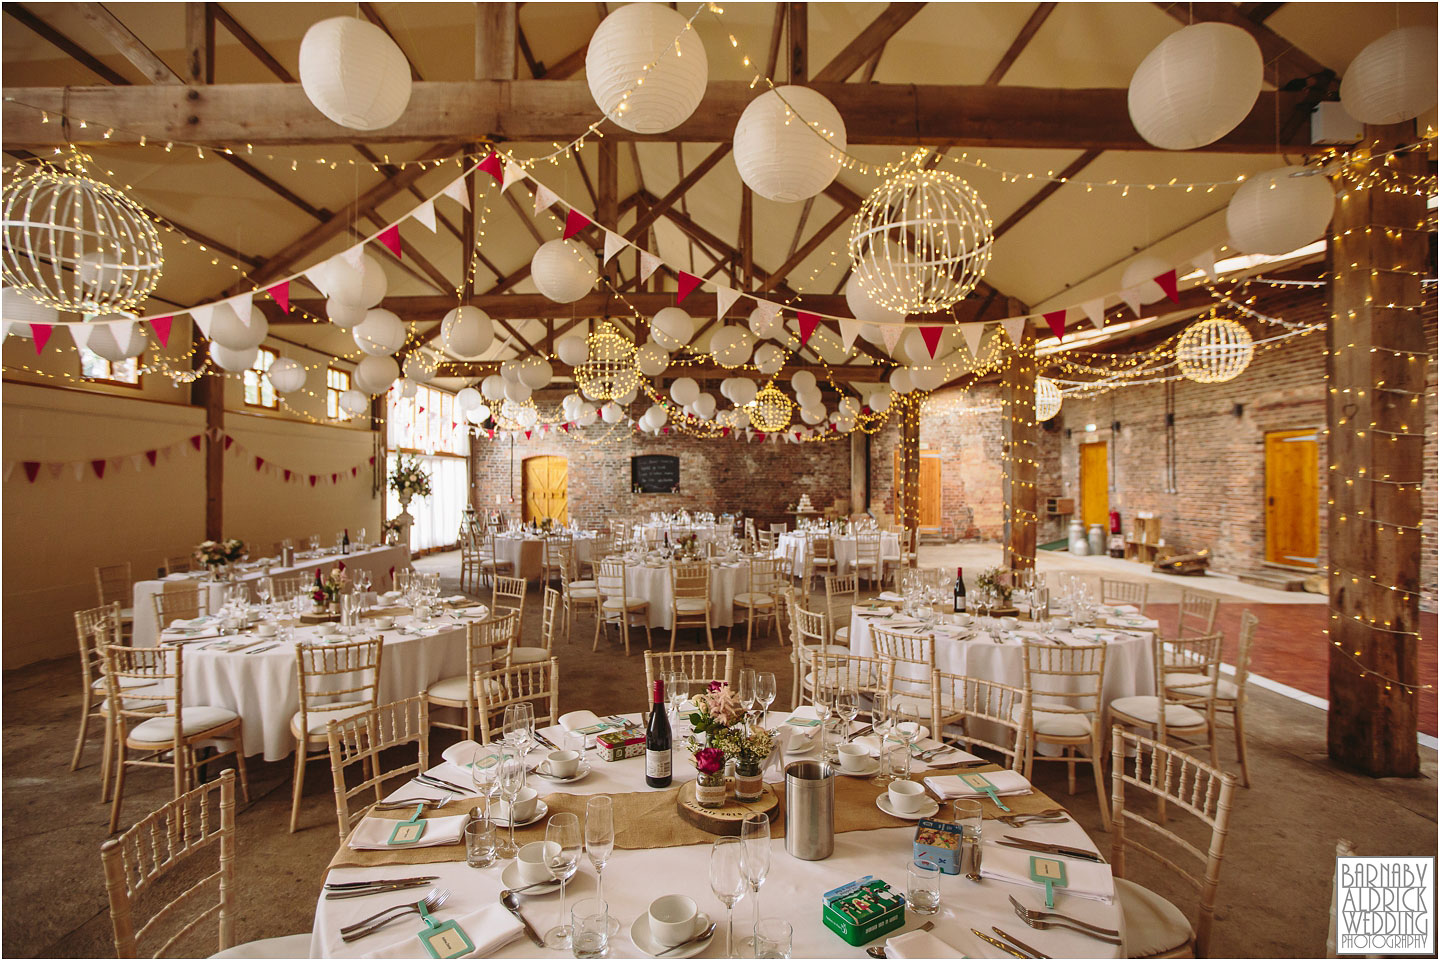 Wedding barn set for the wedding breakfast at Barmbyfields Barn wedding venue near York